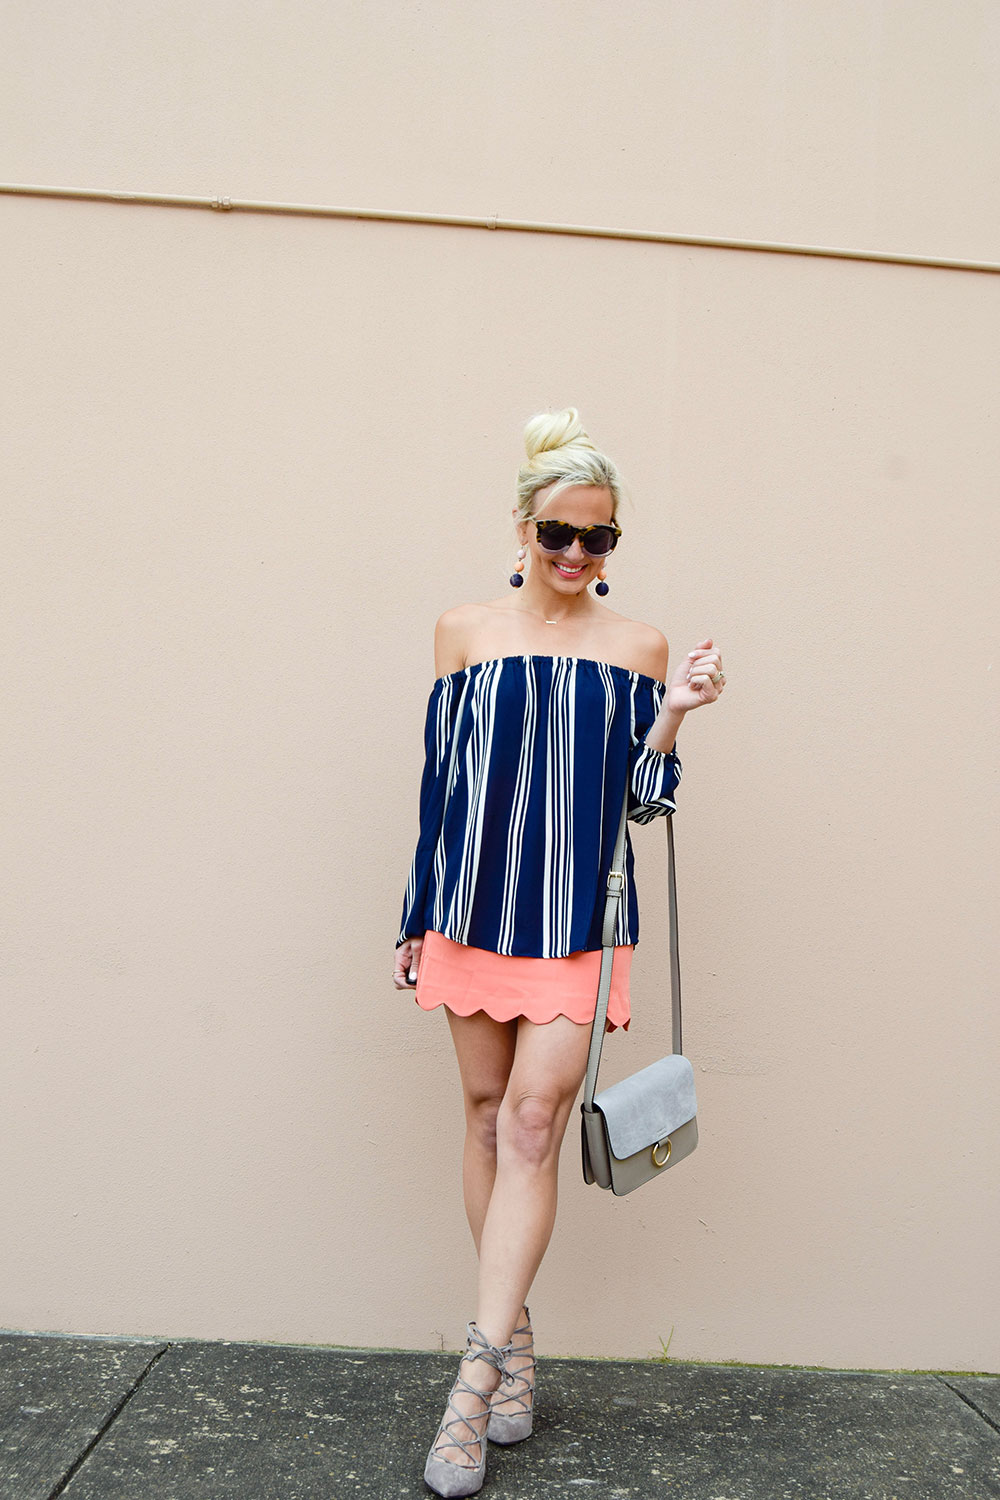 vandi-fair-blog-lauren-vandiver-dallas-texas-southern-fashion-blogger-shop-tristin-clothing-online-boutique-local-navy-nautical-striped-off-the-shoulder-top-coral-scallop-skirt-fall-outfit-5